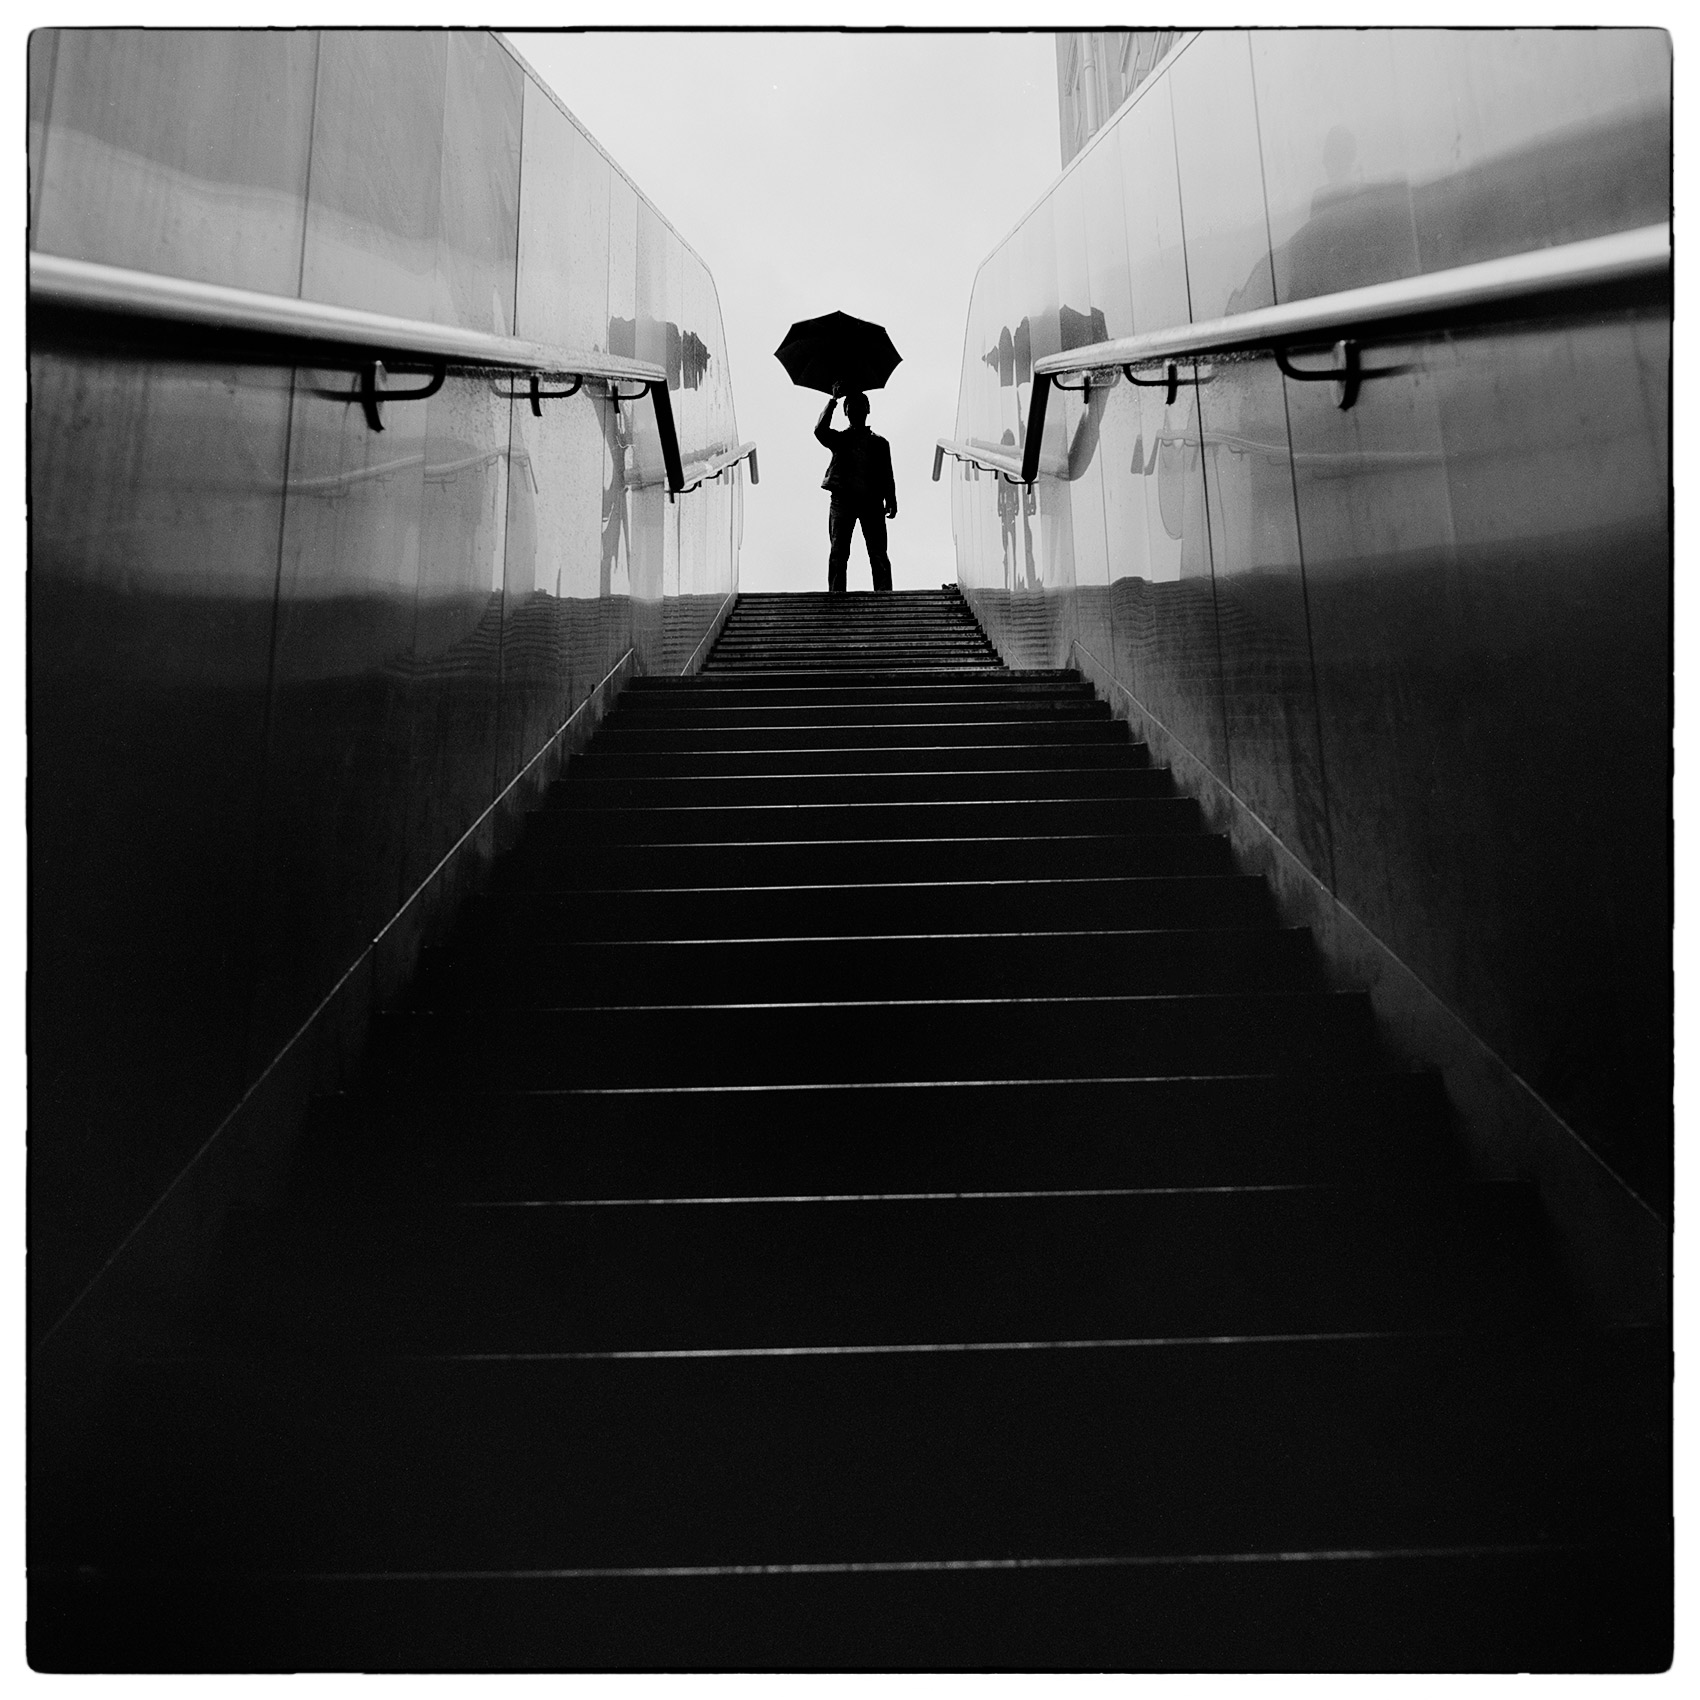 a-man-holding-an-umbrella-is-silhouetted-as-gets-ready-to-ascend-a-staircase-in-paris-france